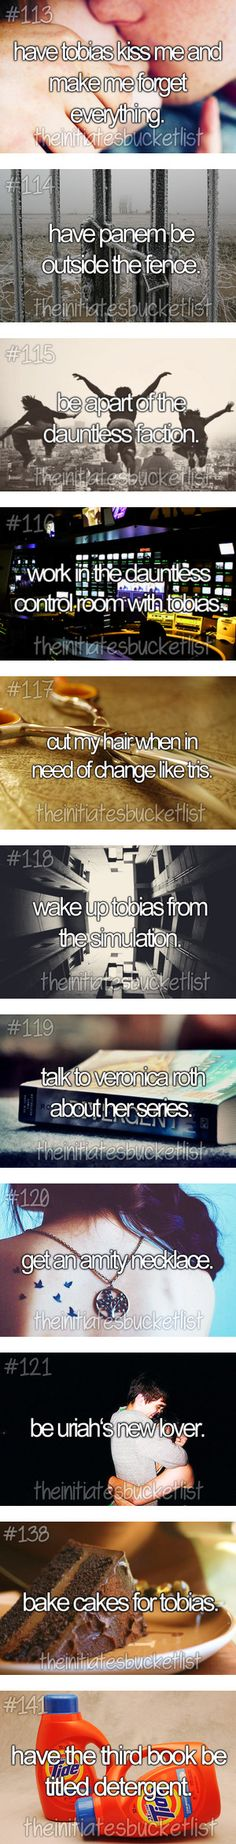 """The Divergent Bucket List Part 2"" by thehungergamesclique ❤ liked on Polyvore"